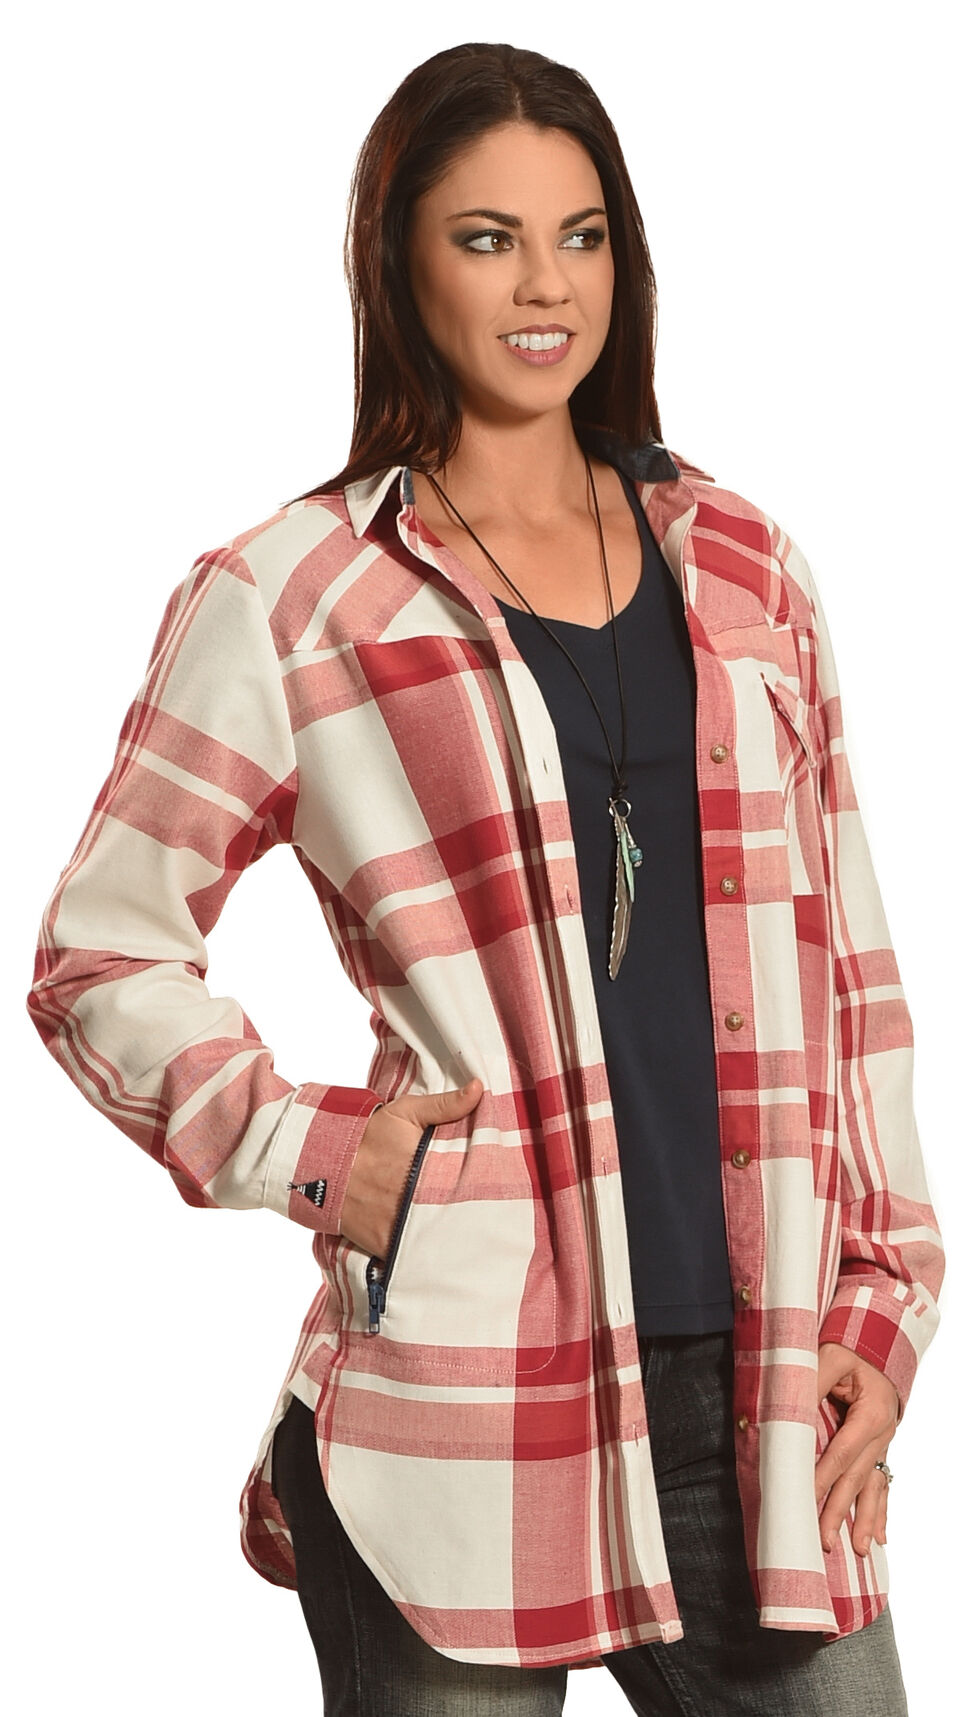 Tasha Polizzi Women's Plaid Highland Country Shirt , Raspberry, hi-res